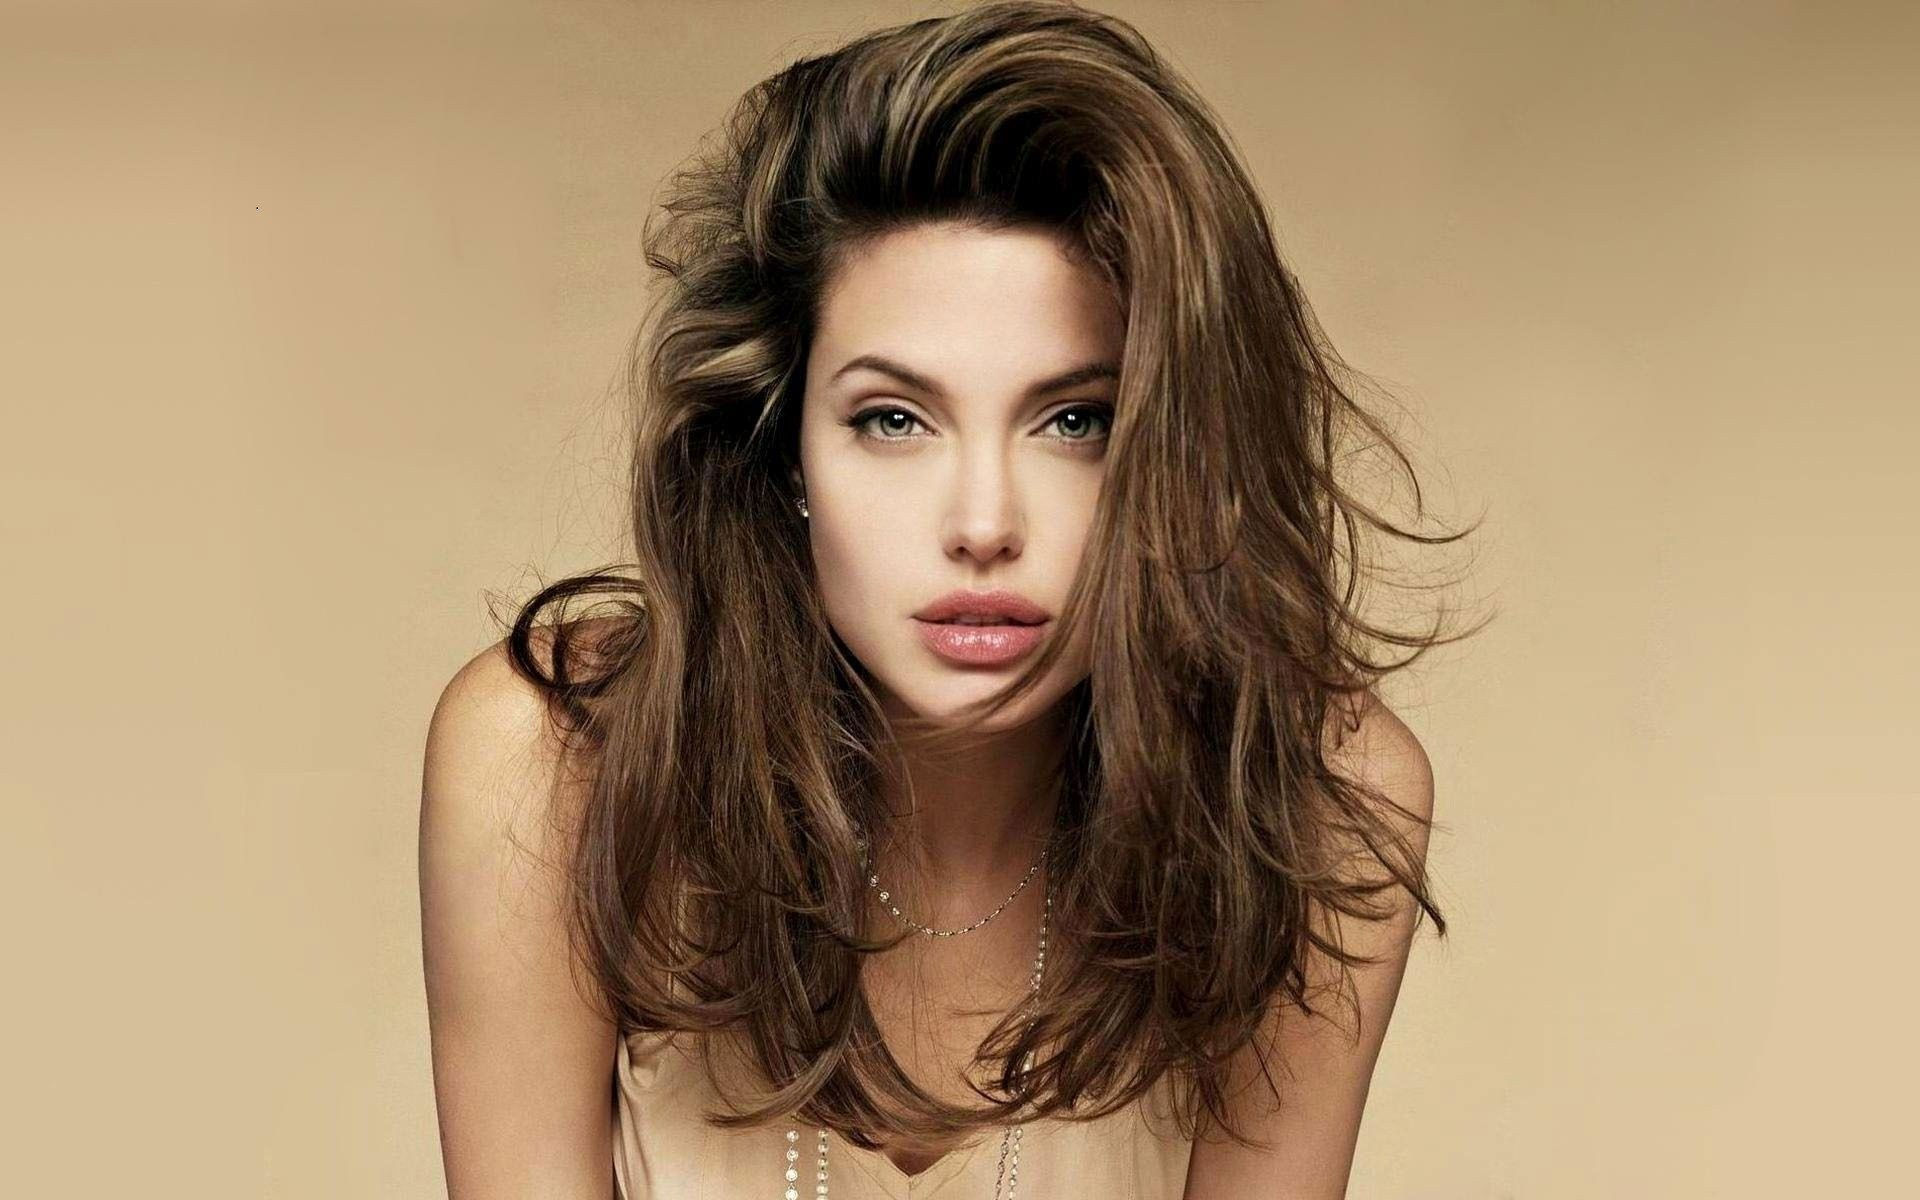 angelina jolie s transformation through the years